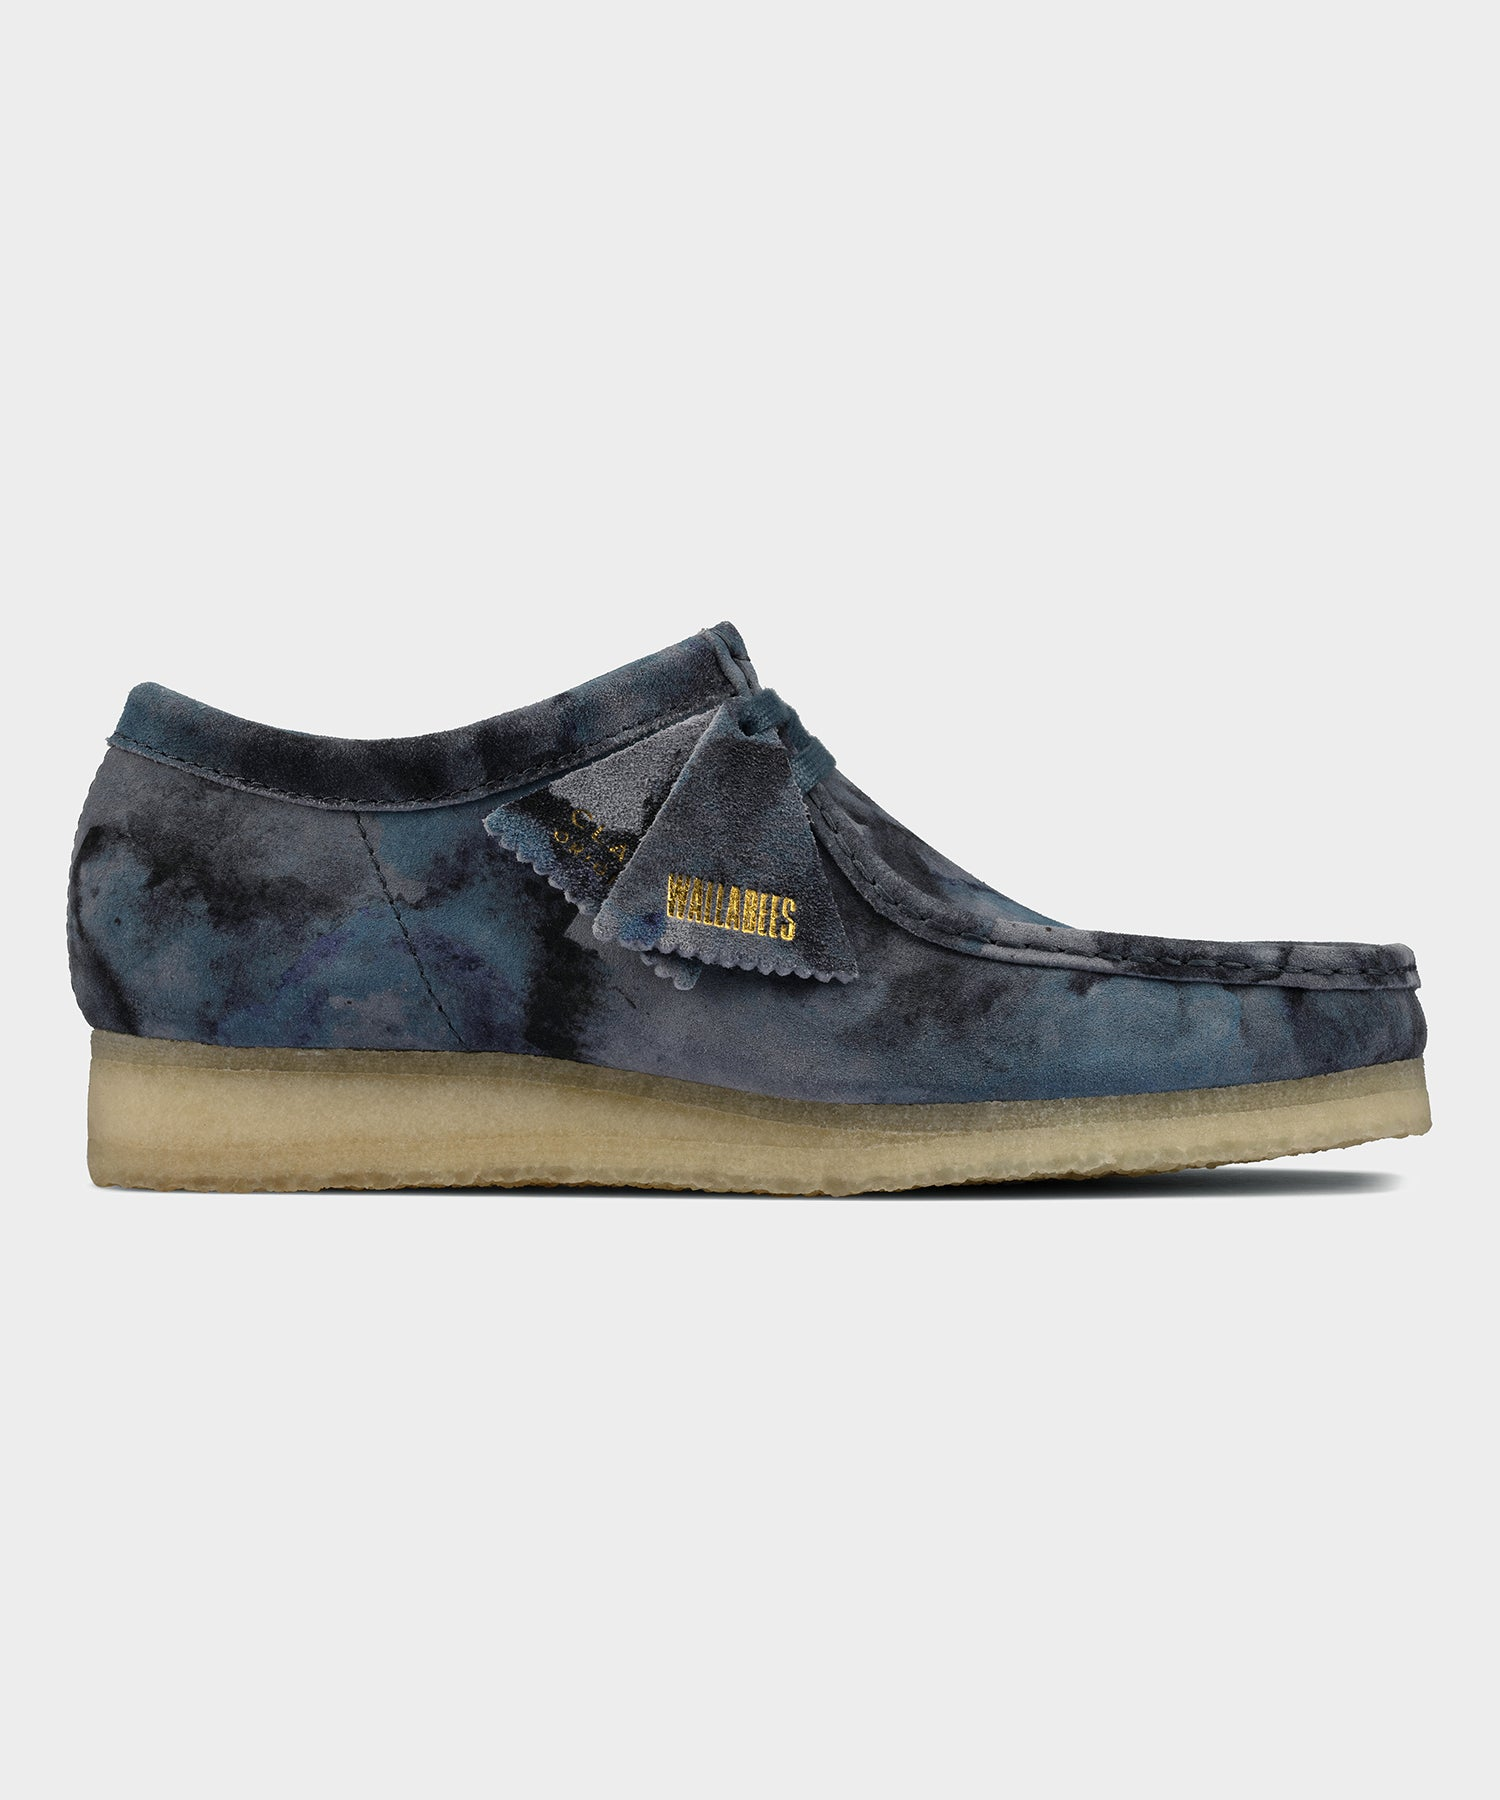 Clarks Wallabee in Blue Camo